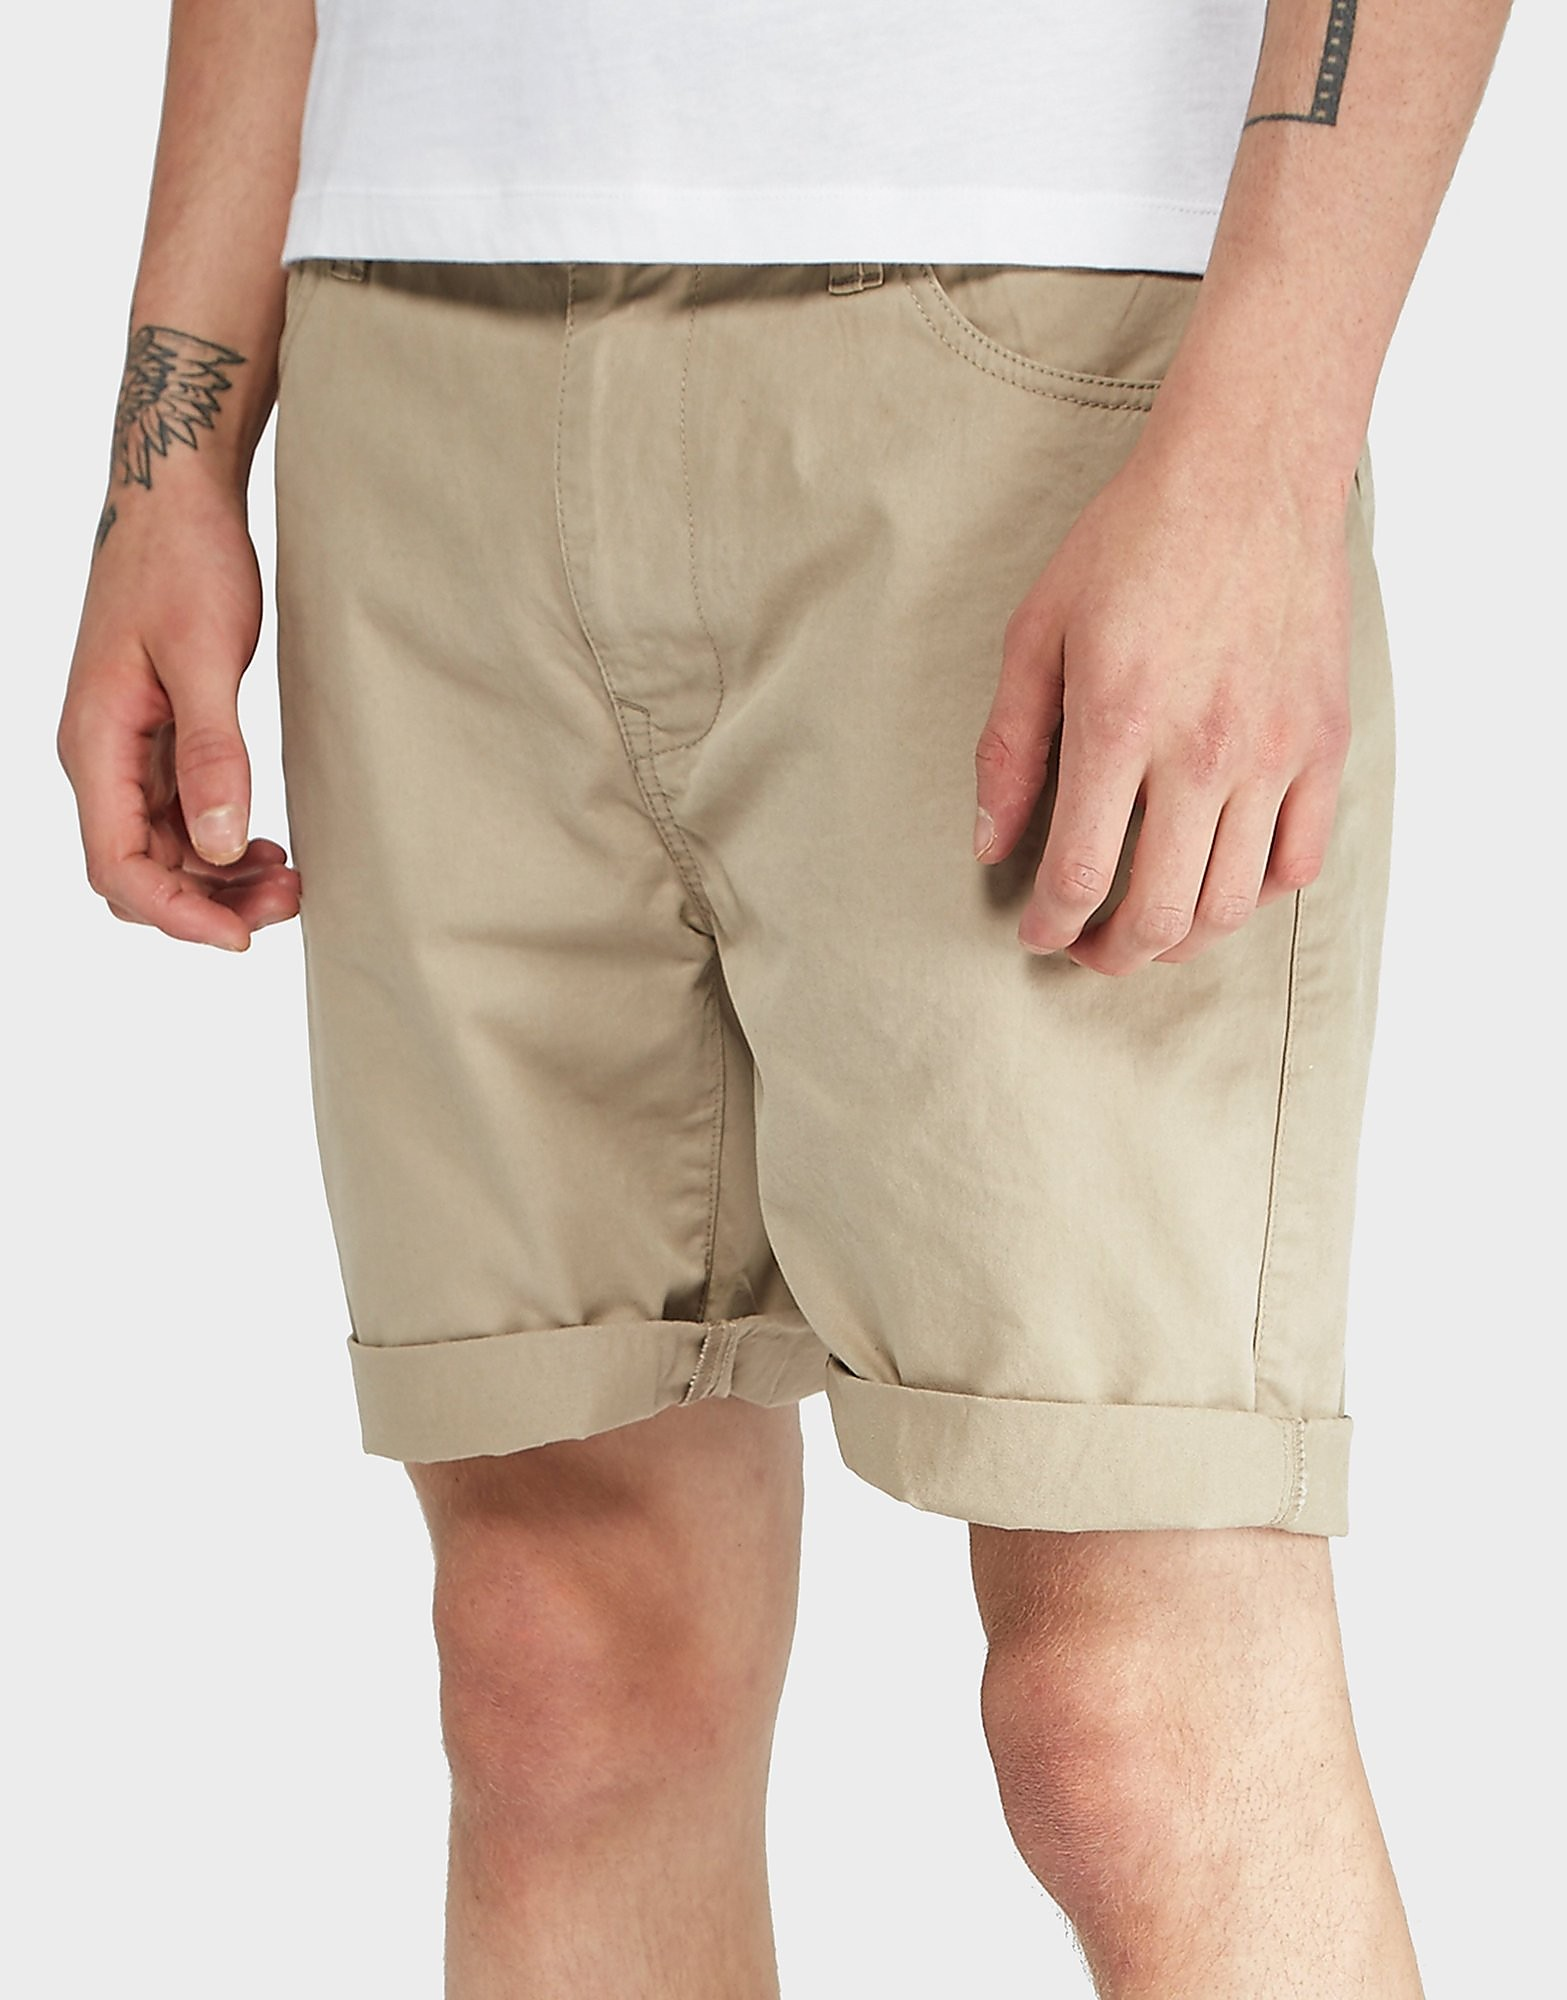 One True Saxon Hastings Shorts - Exclusive